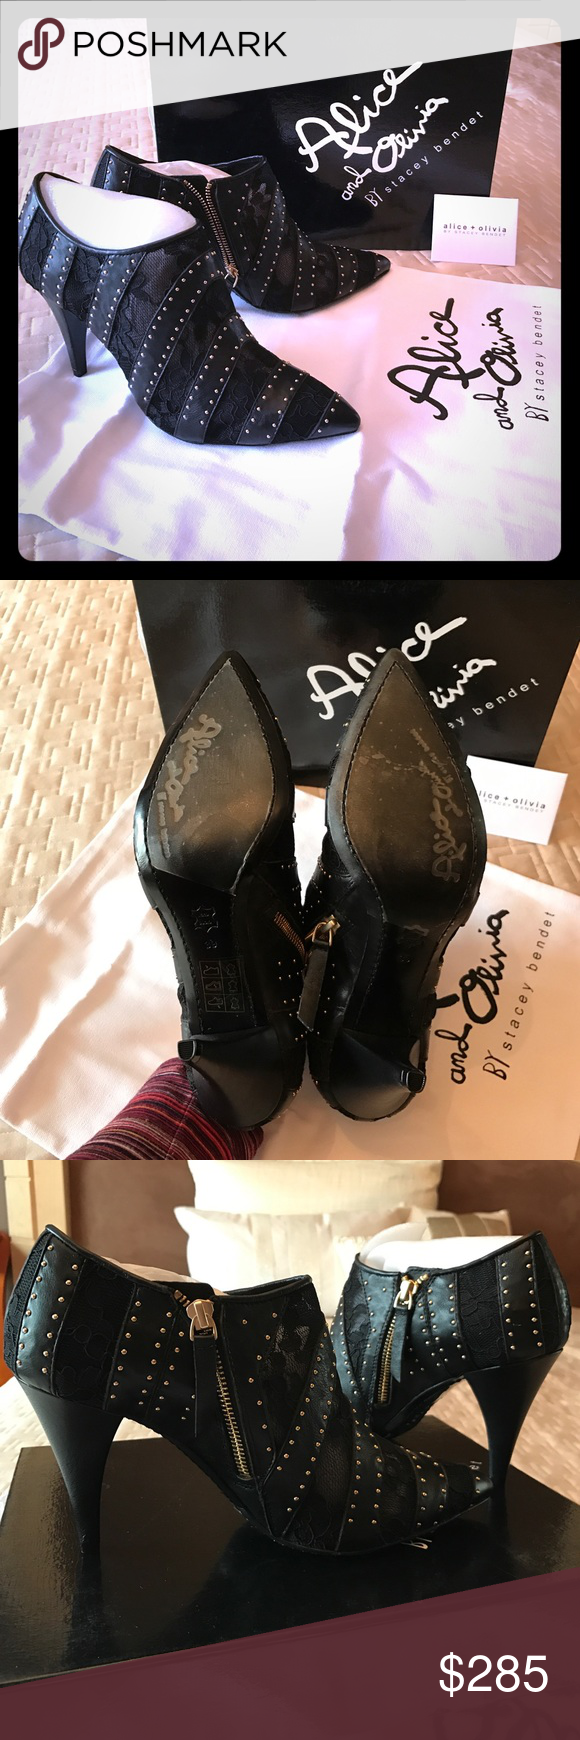 New Alice + Olivia booties Calissa  Floral Lace & Leather Booties   Brand new   Bought on final sale so can't return it. Come in a box with all papers and dust bag Alice + Olivia Shoes